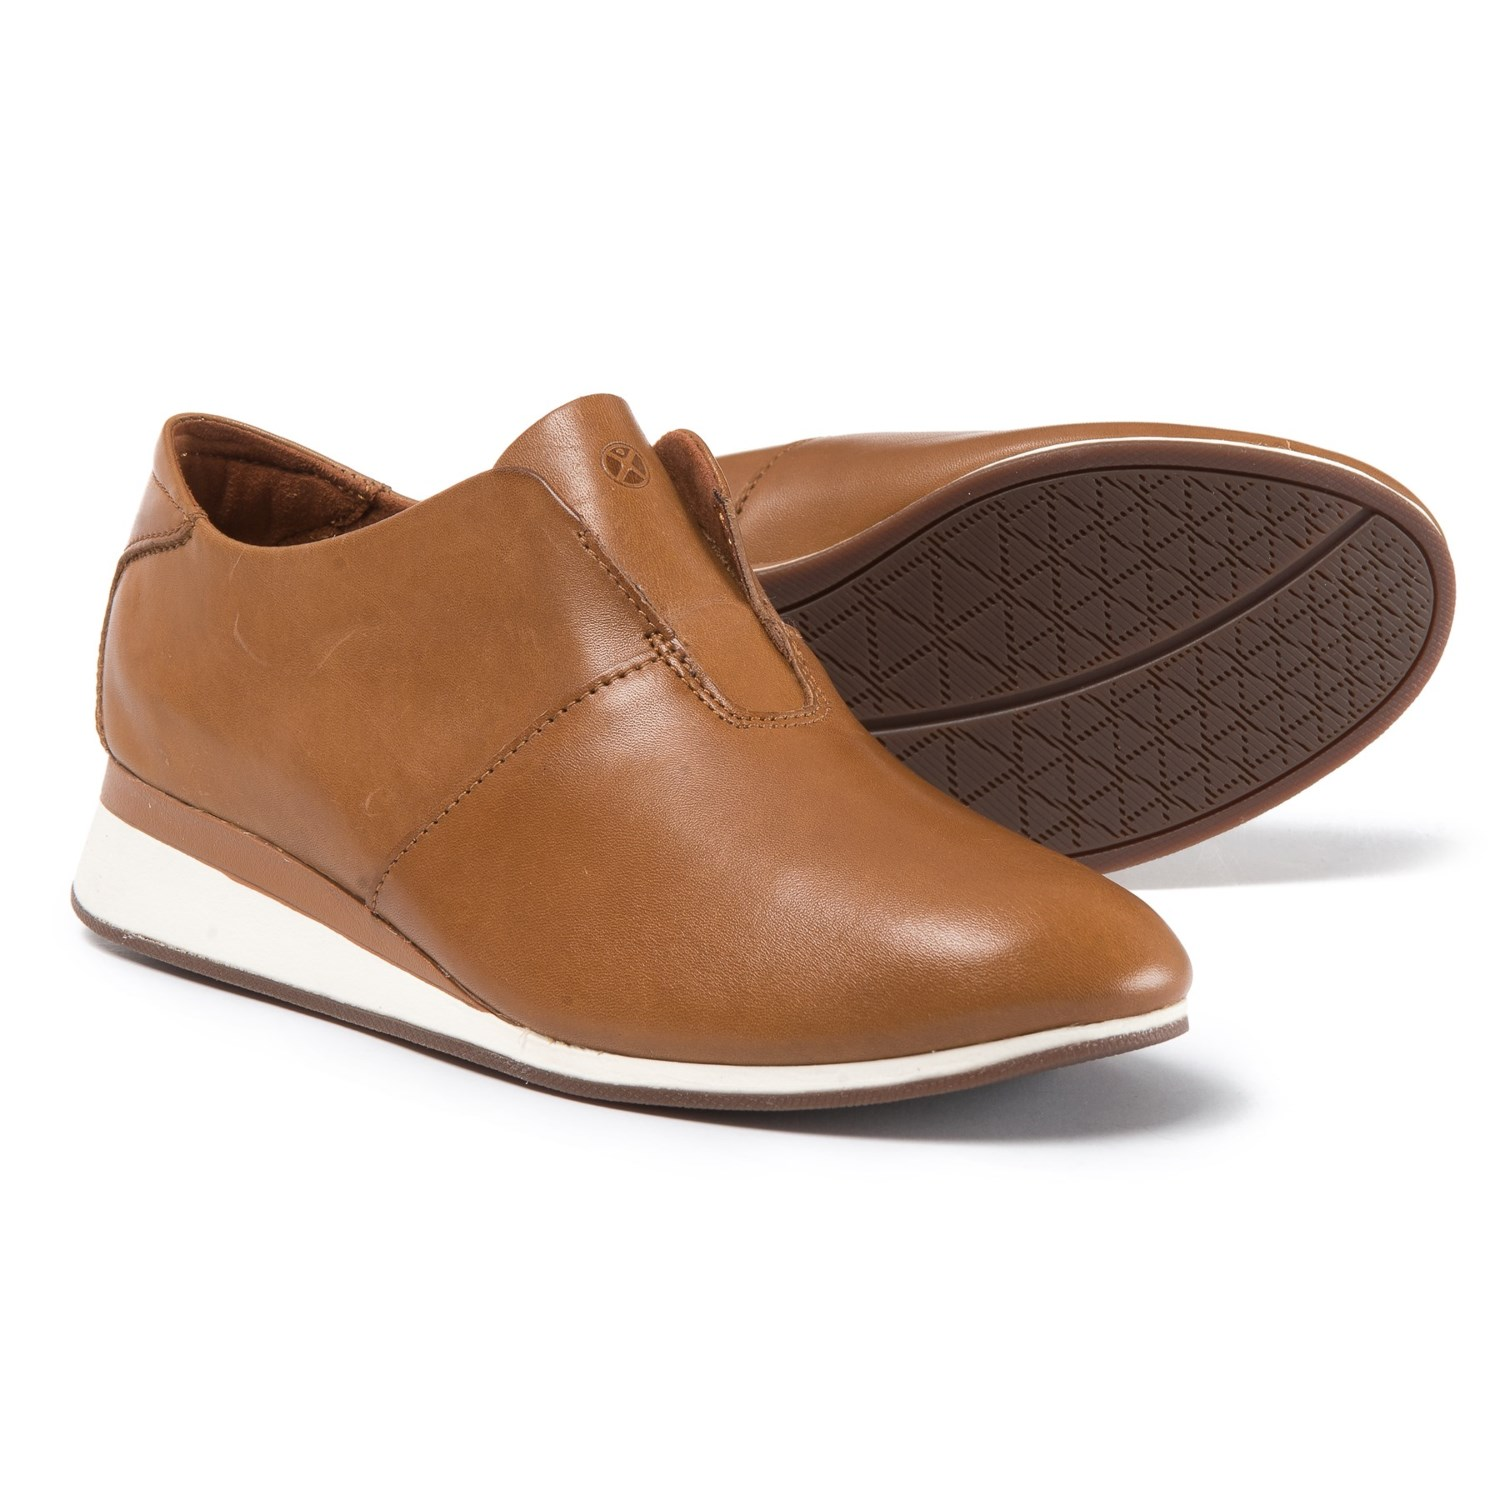 Official Hush Puppies Site - Shop our Soft Style collection for fashioned forward cushioned shoes designed to give you support, comfort, & style all day long.